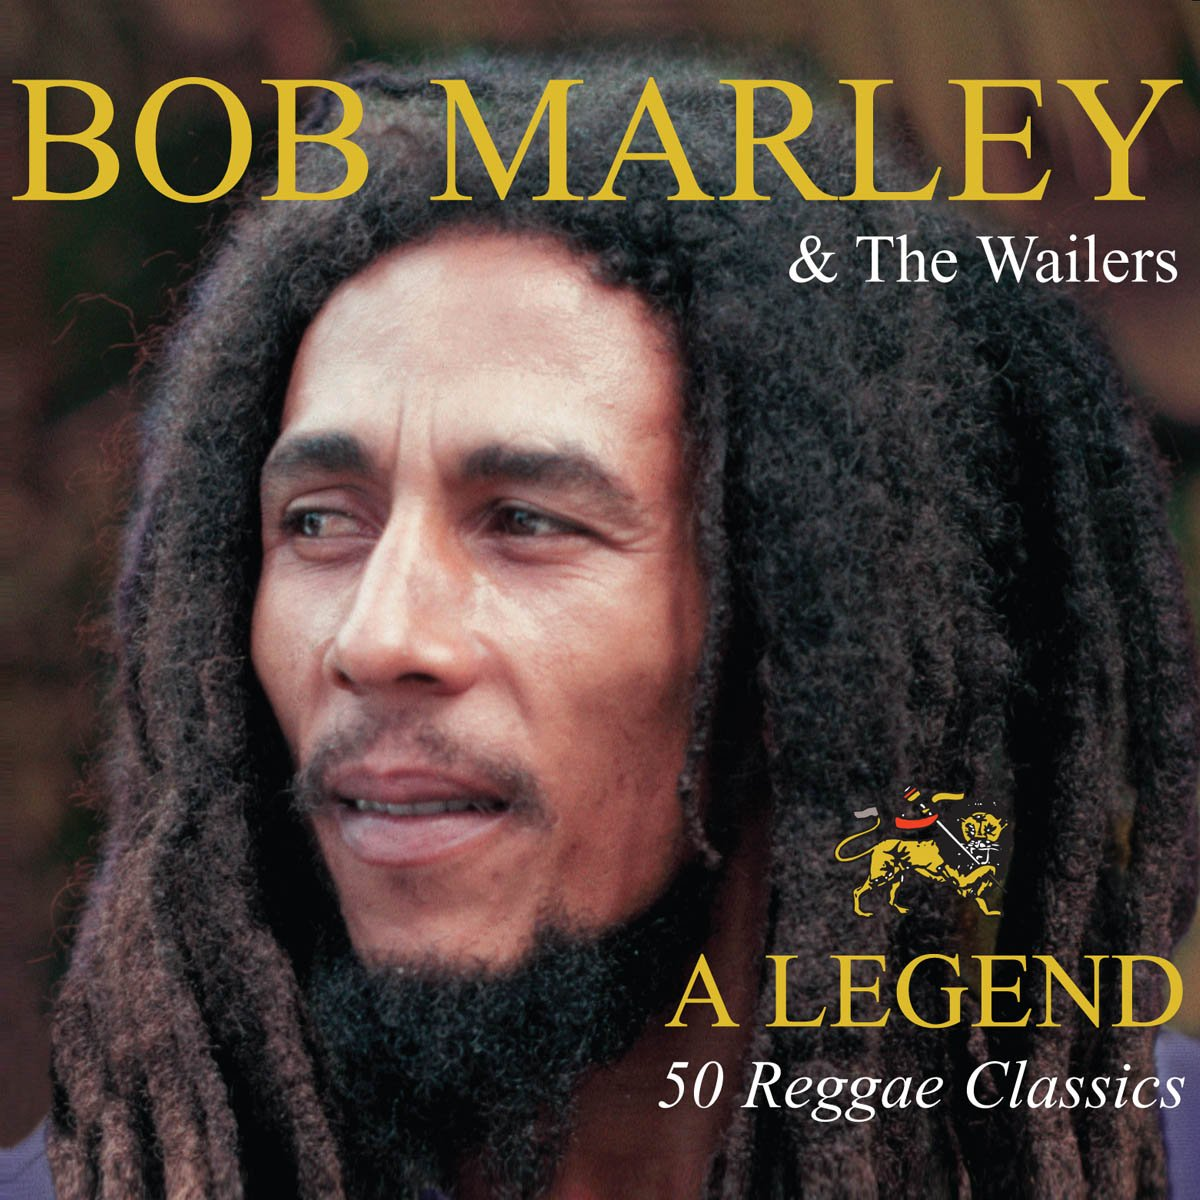 Bob marley legend 50 reggae classics amazon music thecheapjerseys